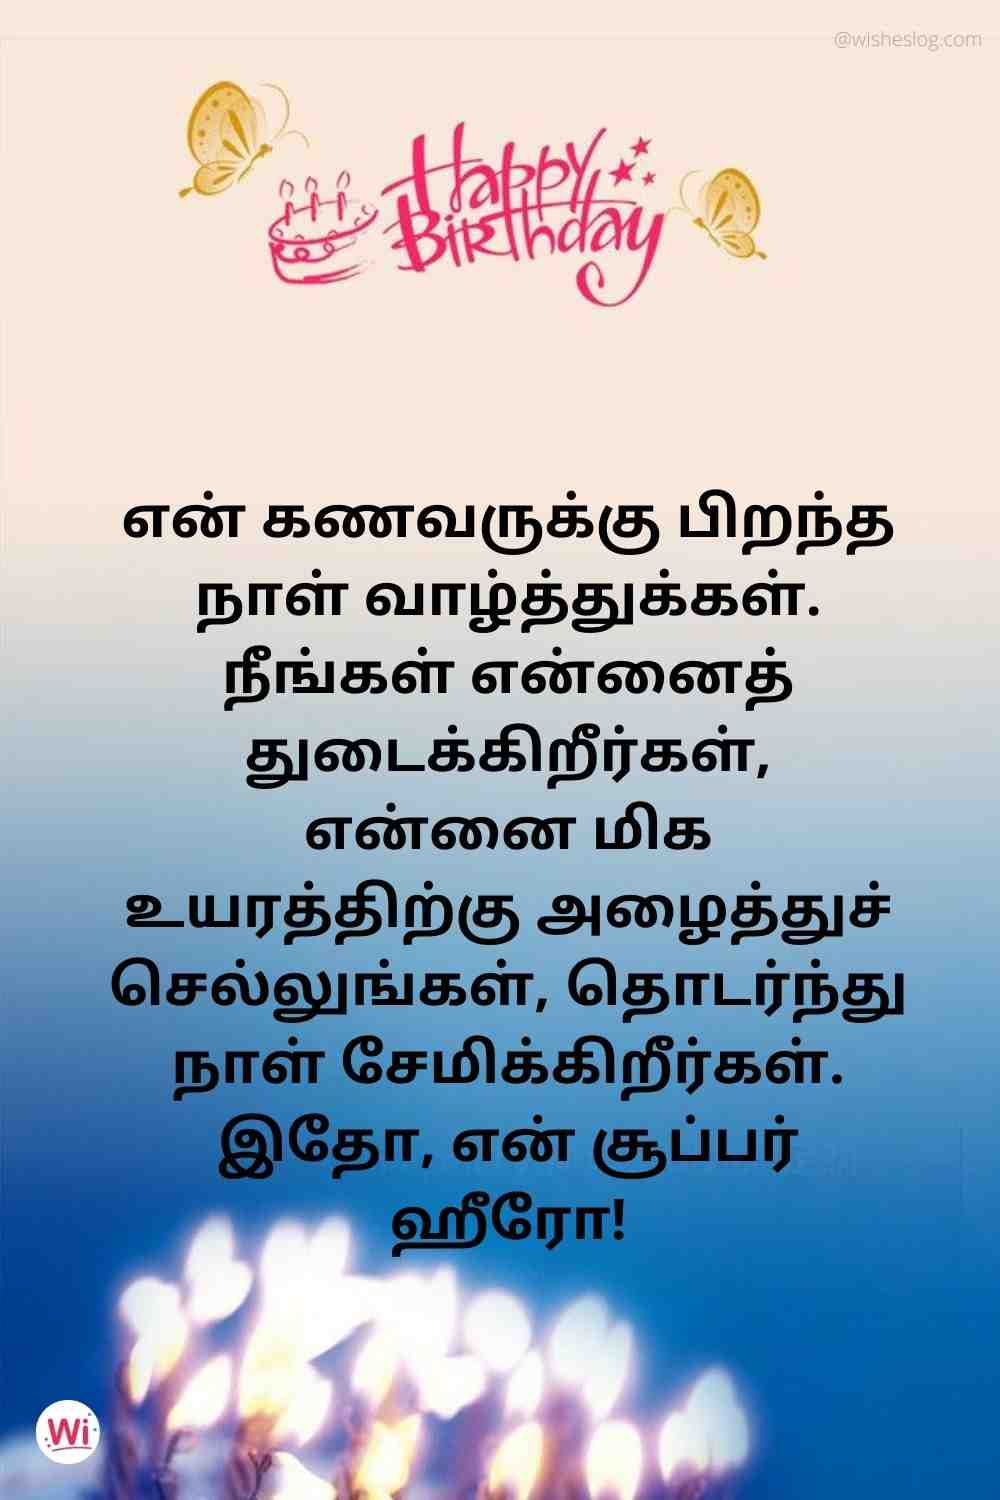 birthday wishes quotes in tamil for husband